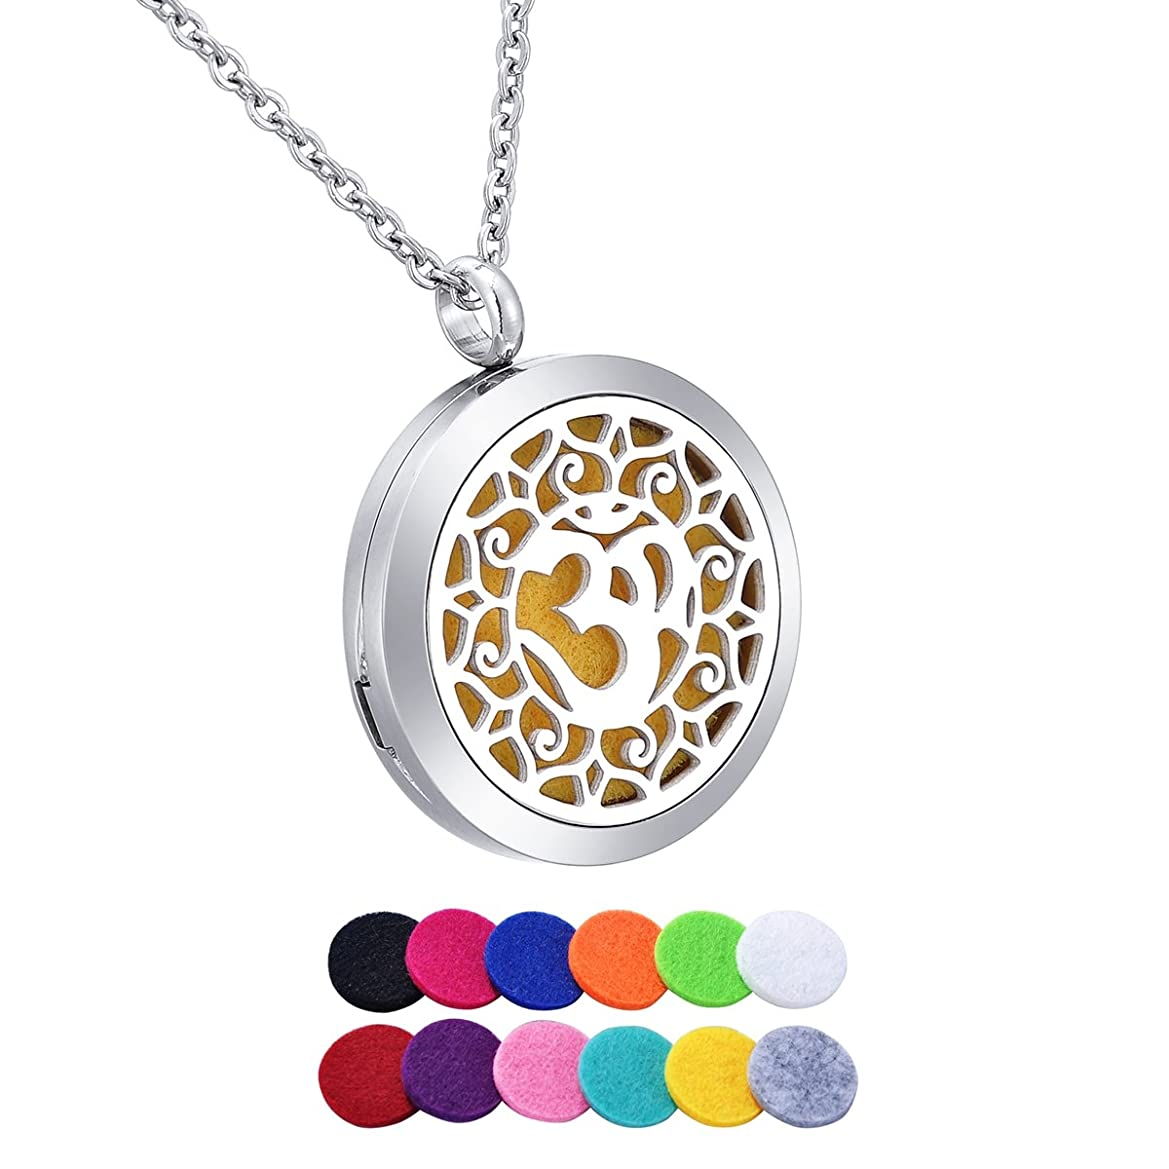 HooAMI Aromatherapy Essential Oil Diffuser Necklace - Yoga Aum Om Ohm Lotus Pendant Locket Jewelry,12 Refill Pads hcdvvmstyh0